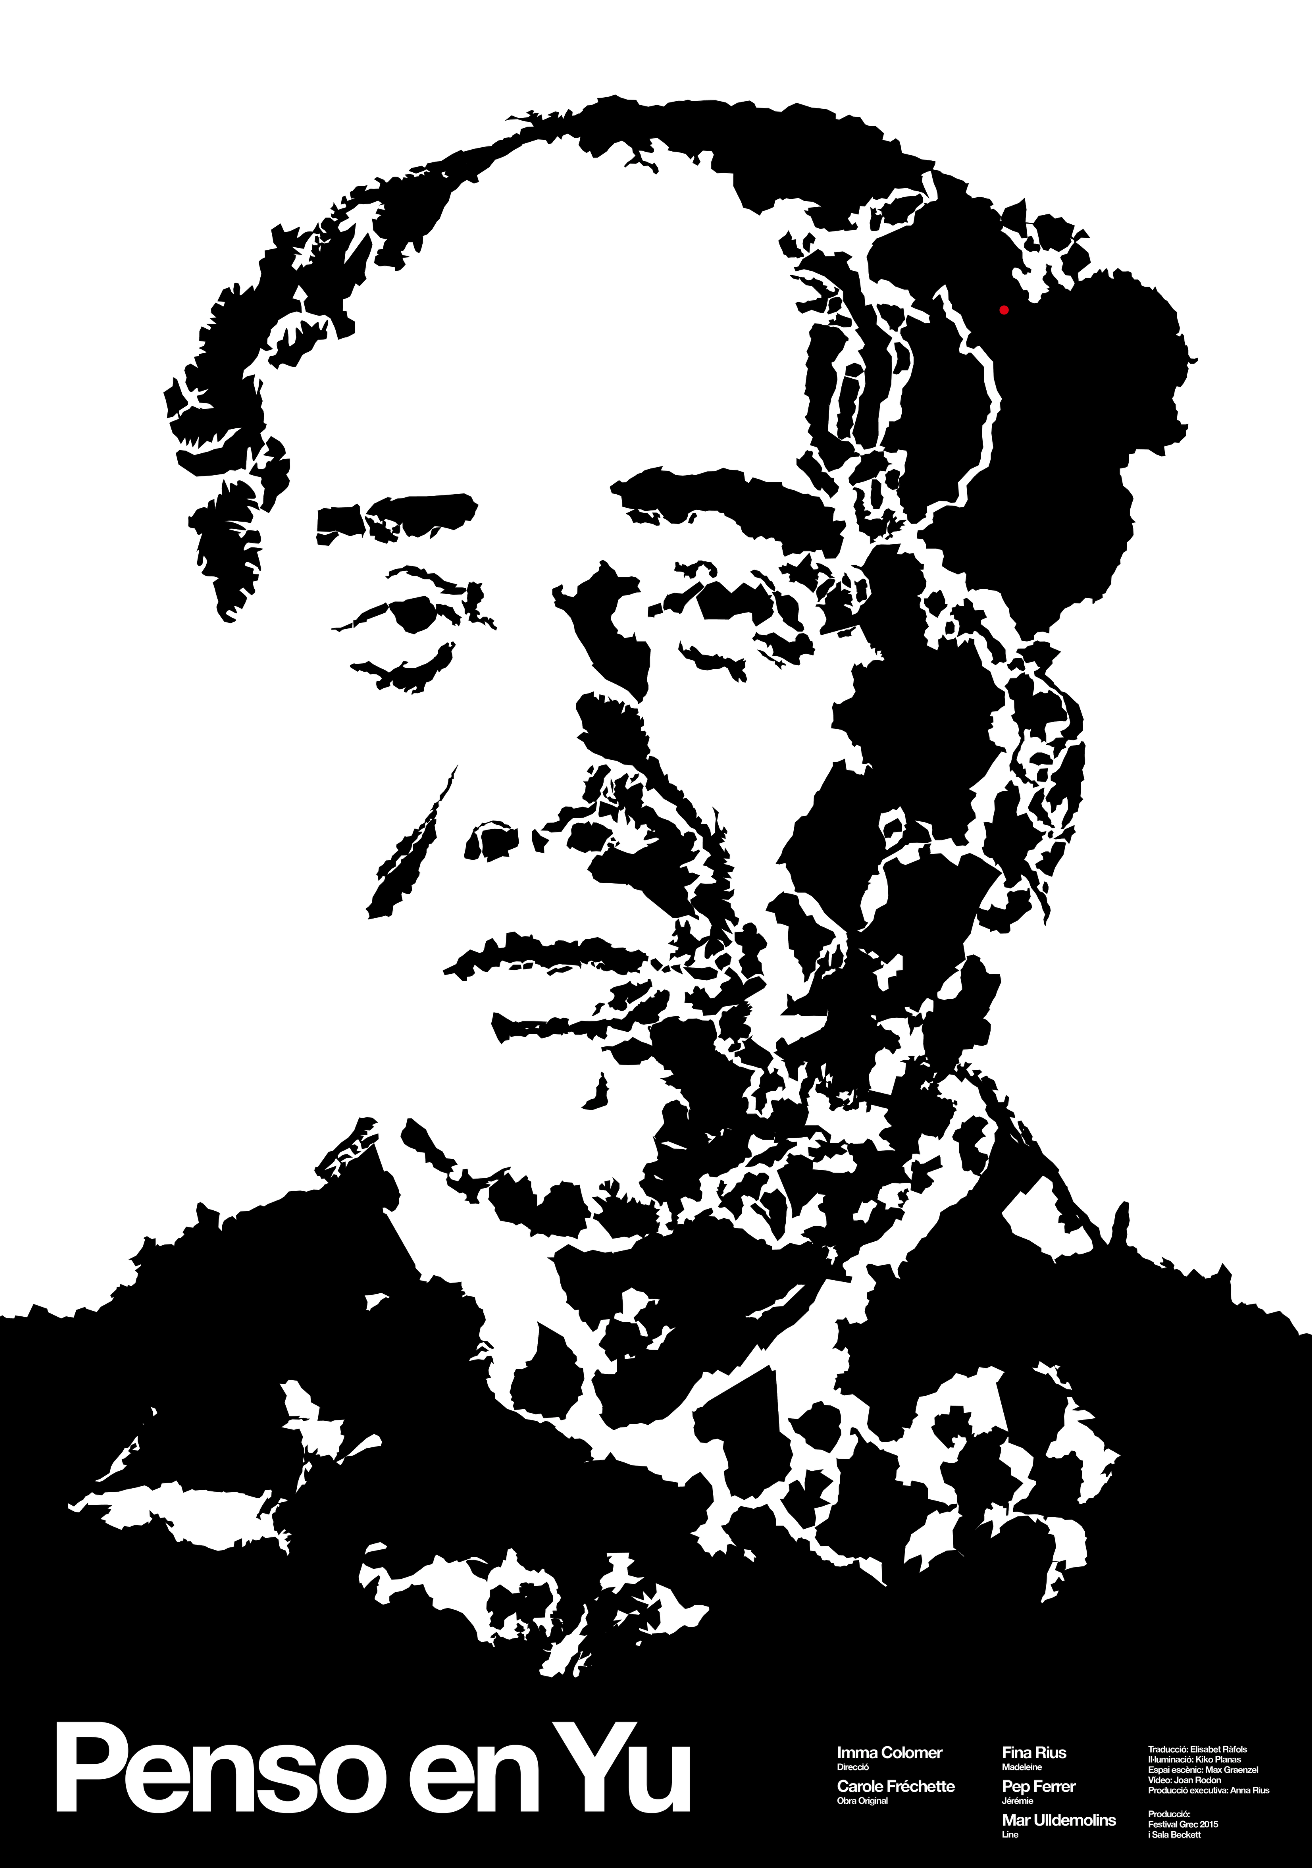 'Continental Mao'. Based on the classical Mao Tse Tung portrait. It's inspired in   Kentaro Nagai's work with reorganising territories to make new forms  .